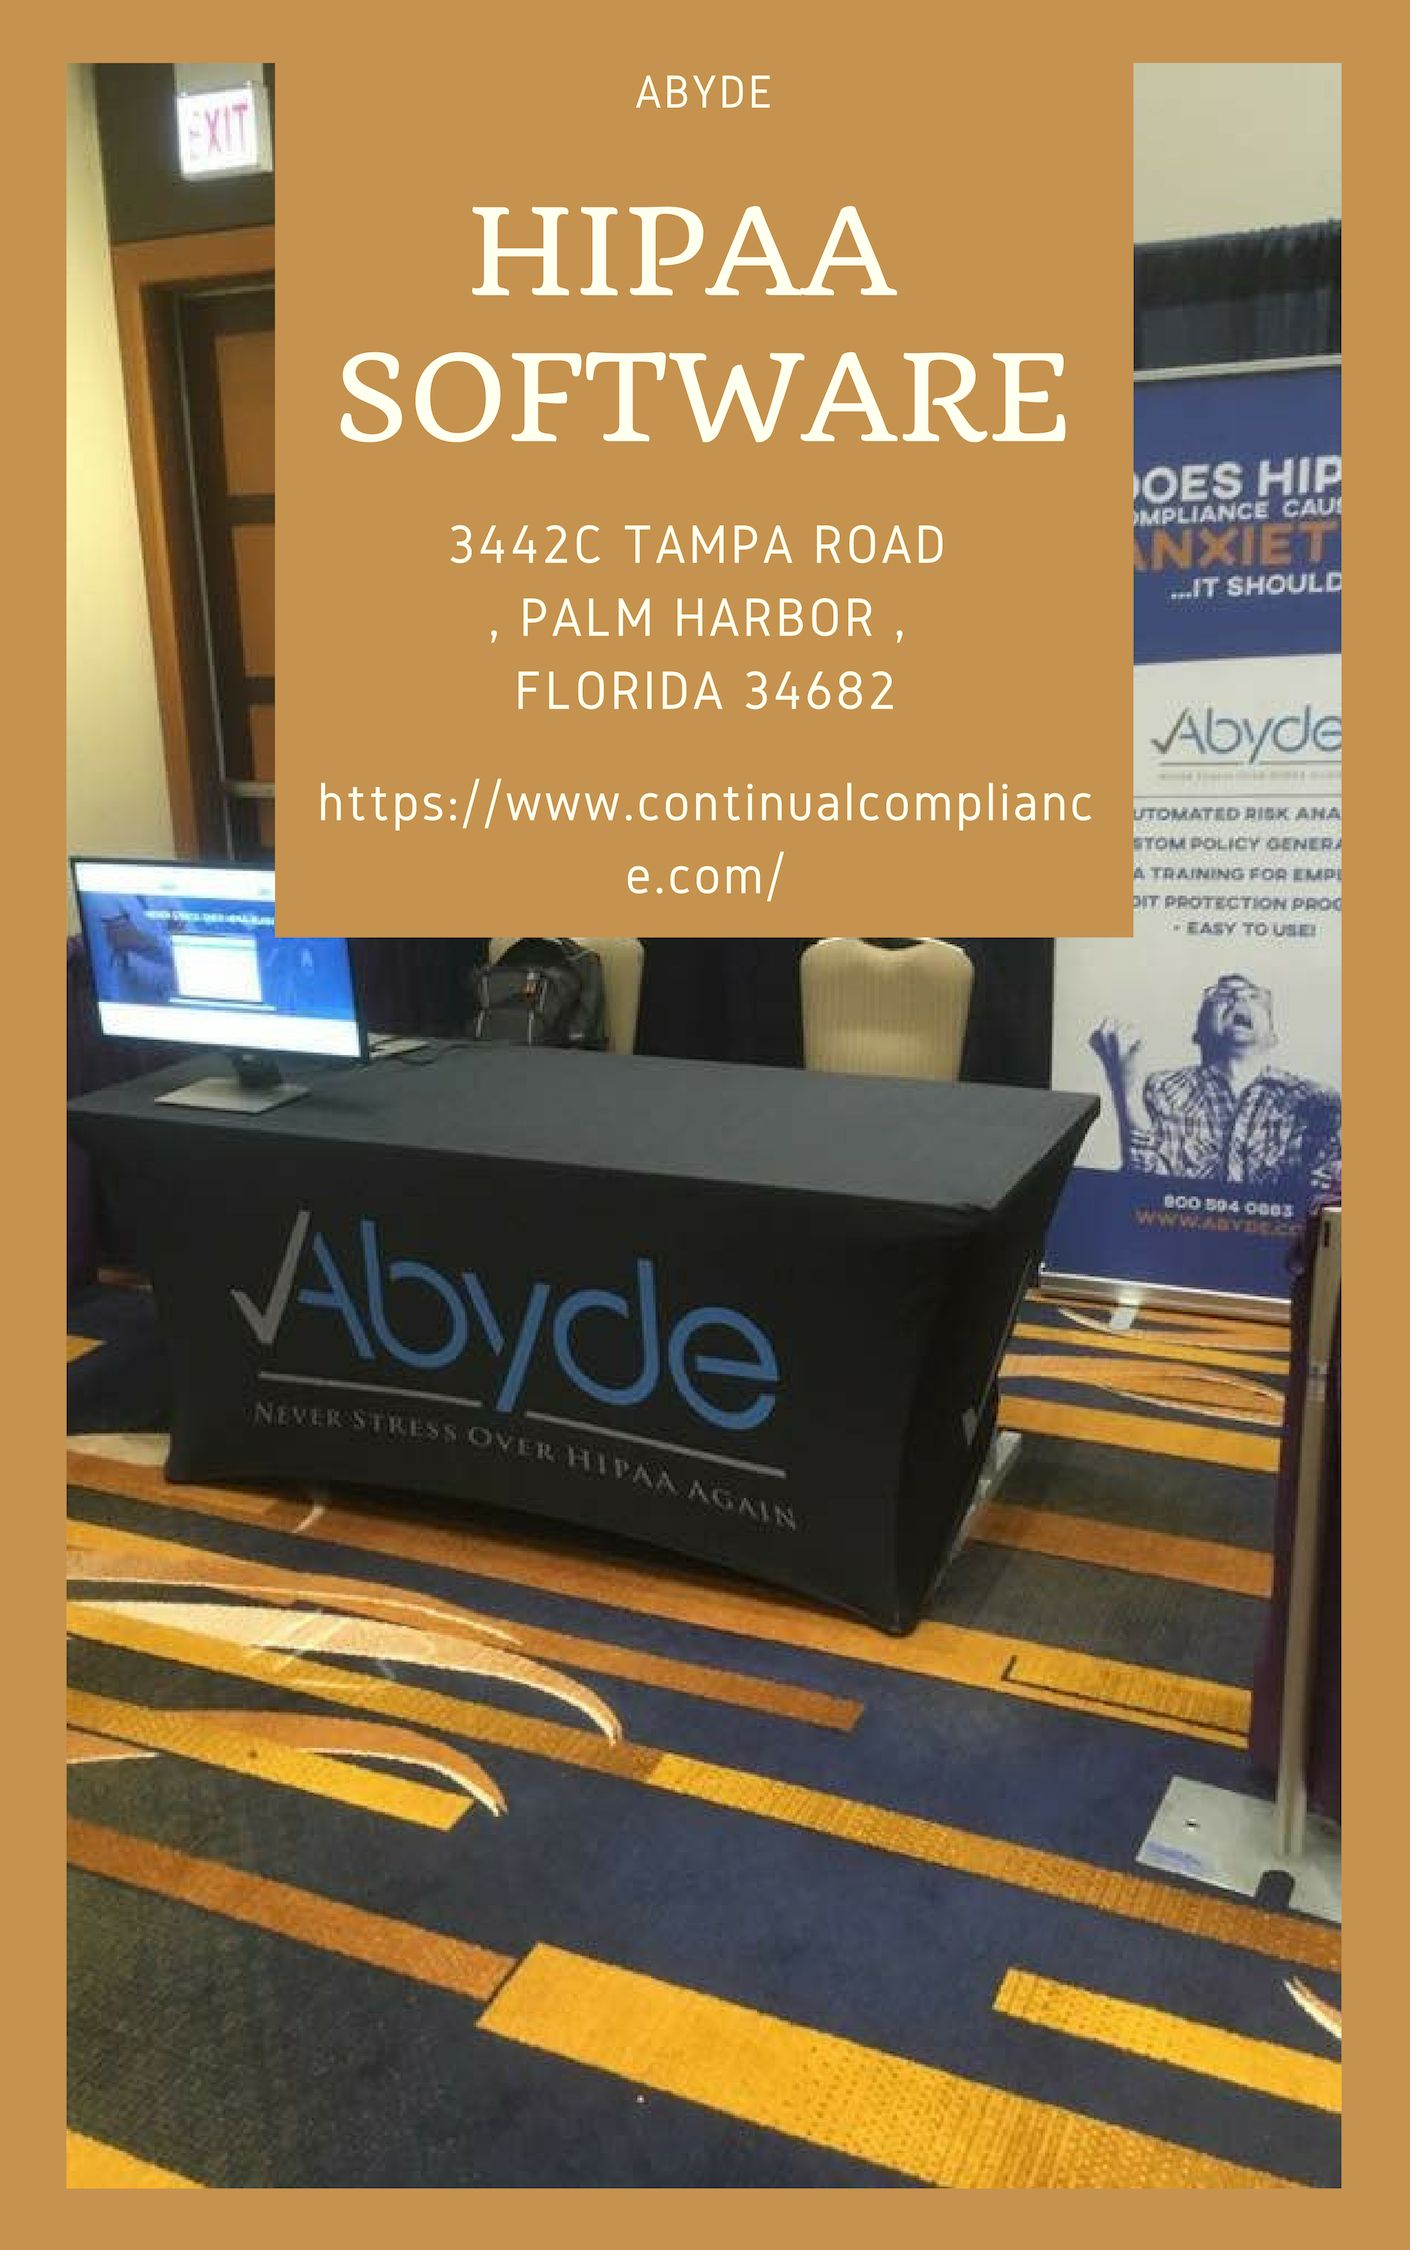 The Abyde software solution provides a simple path to